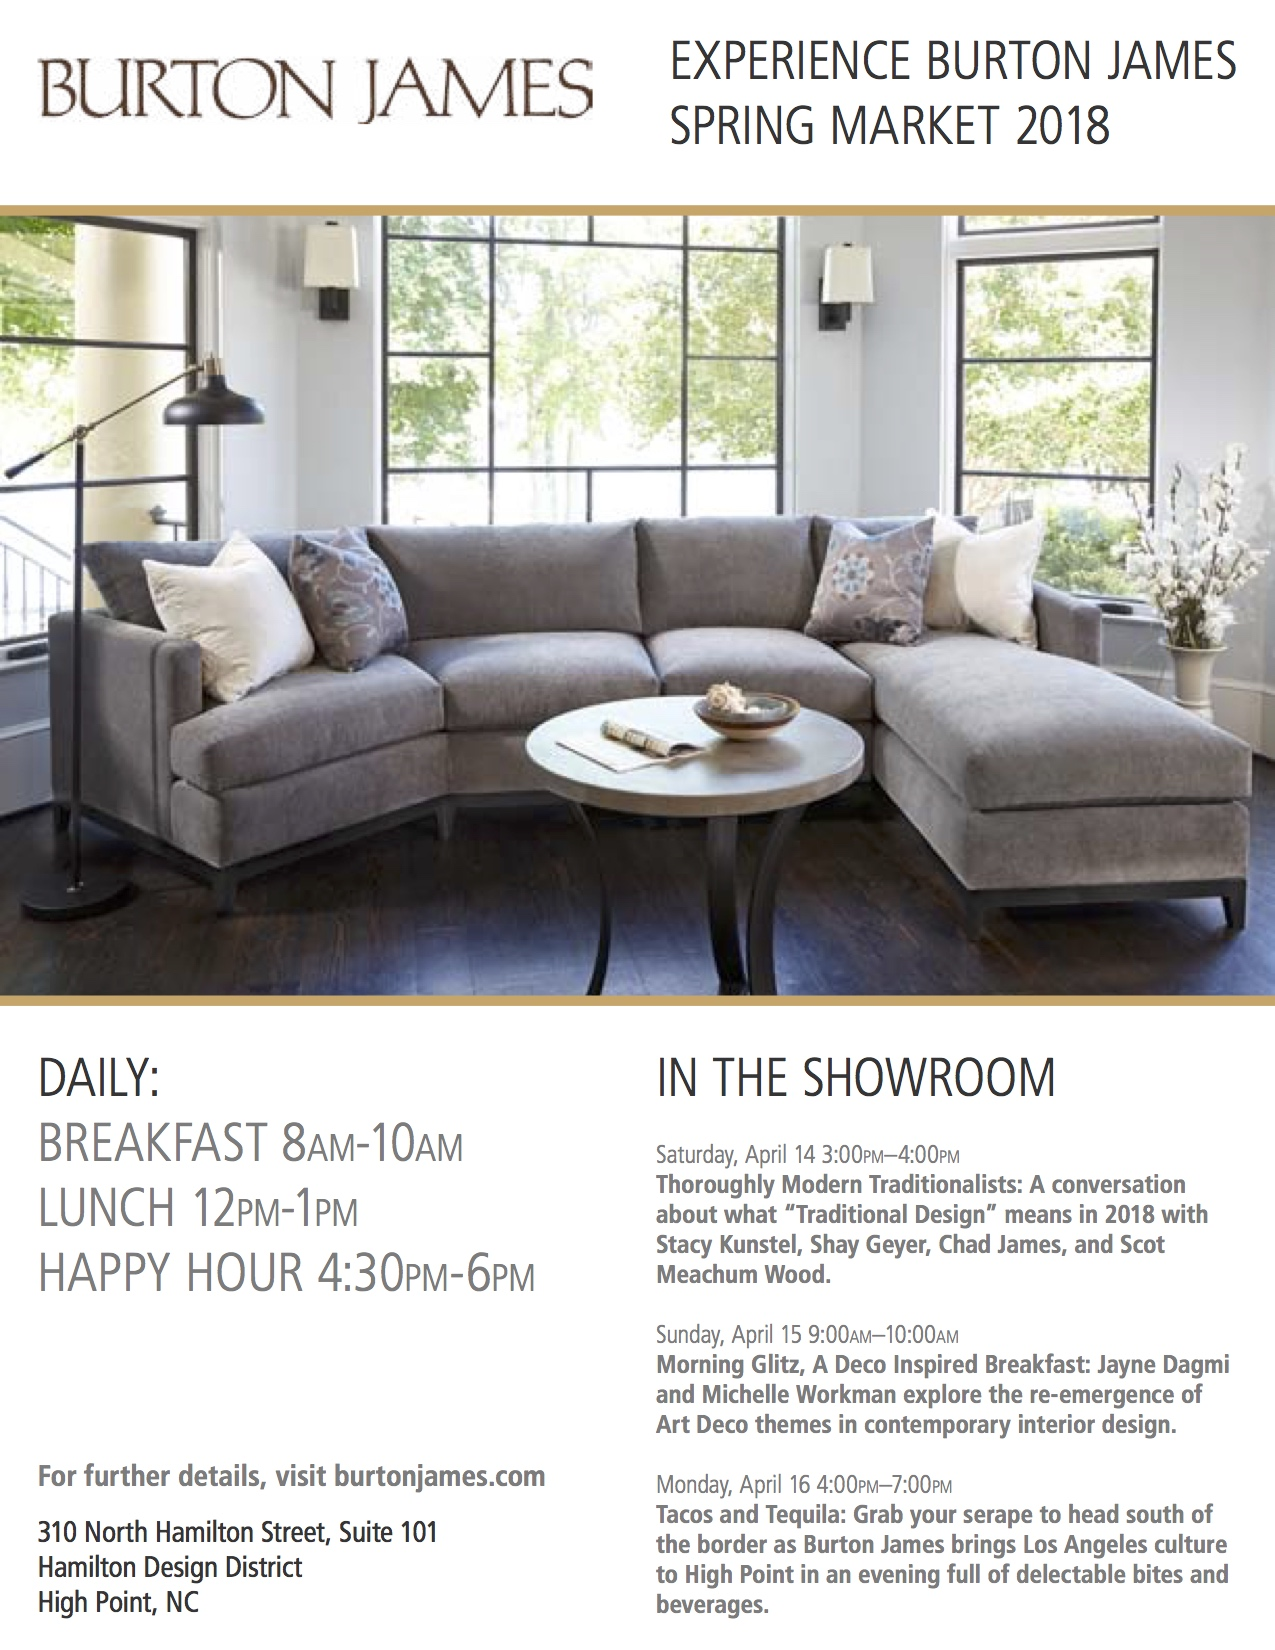 High Point Ready: Our Showroom Schedule - Burton James